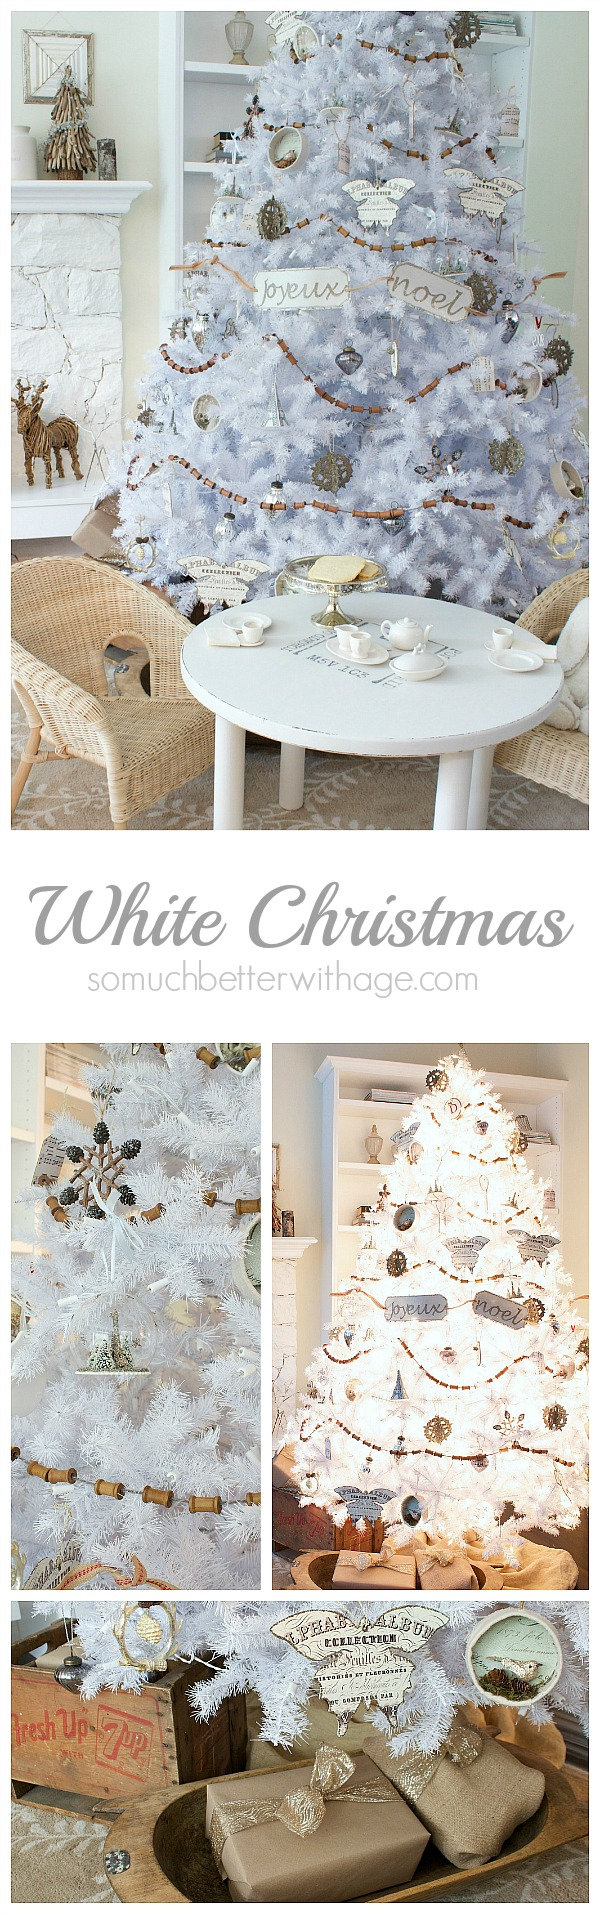 Dreaming of a White Christmas - So Much Better With Age